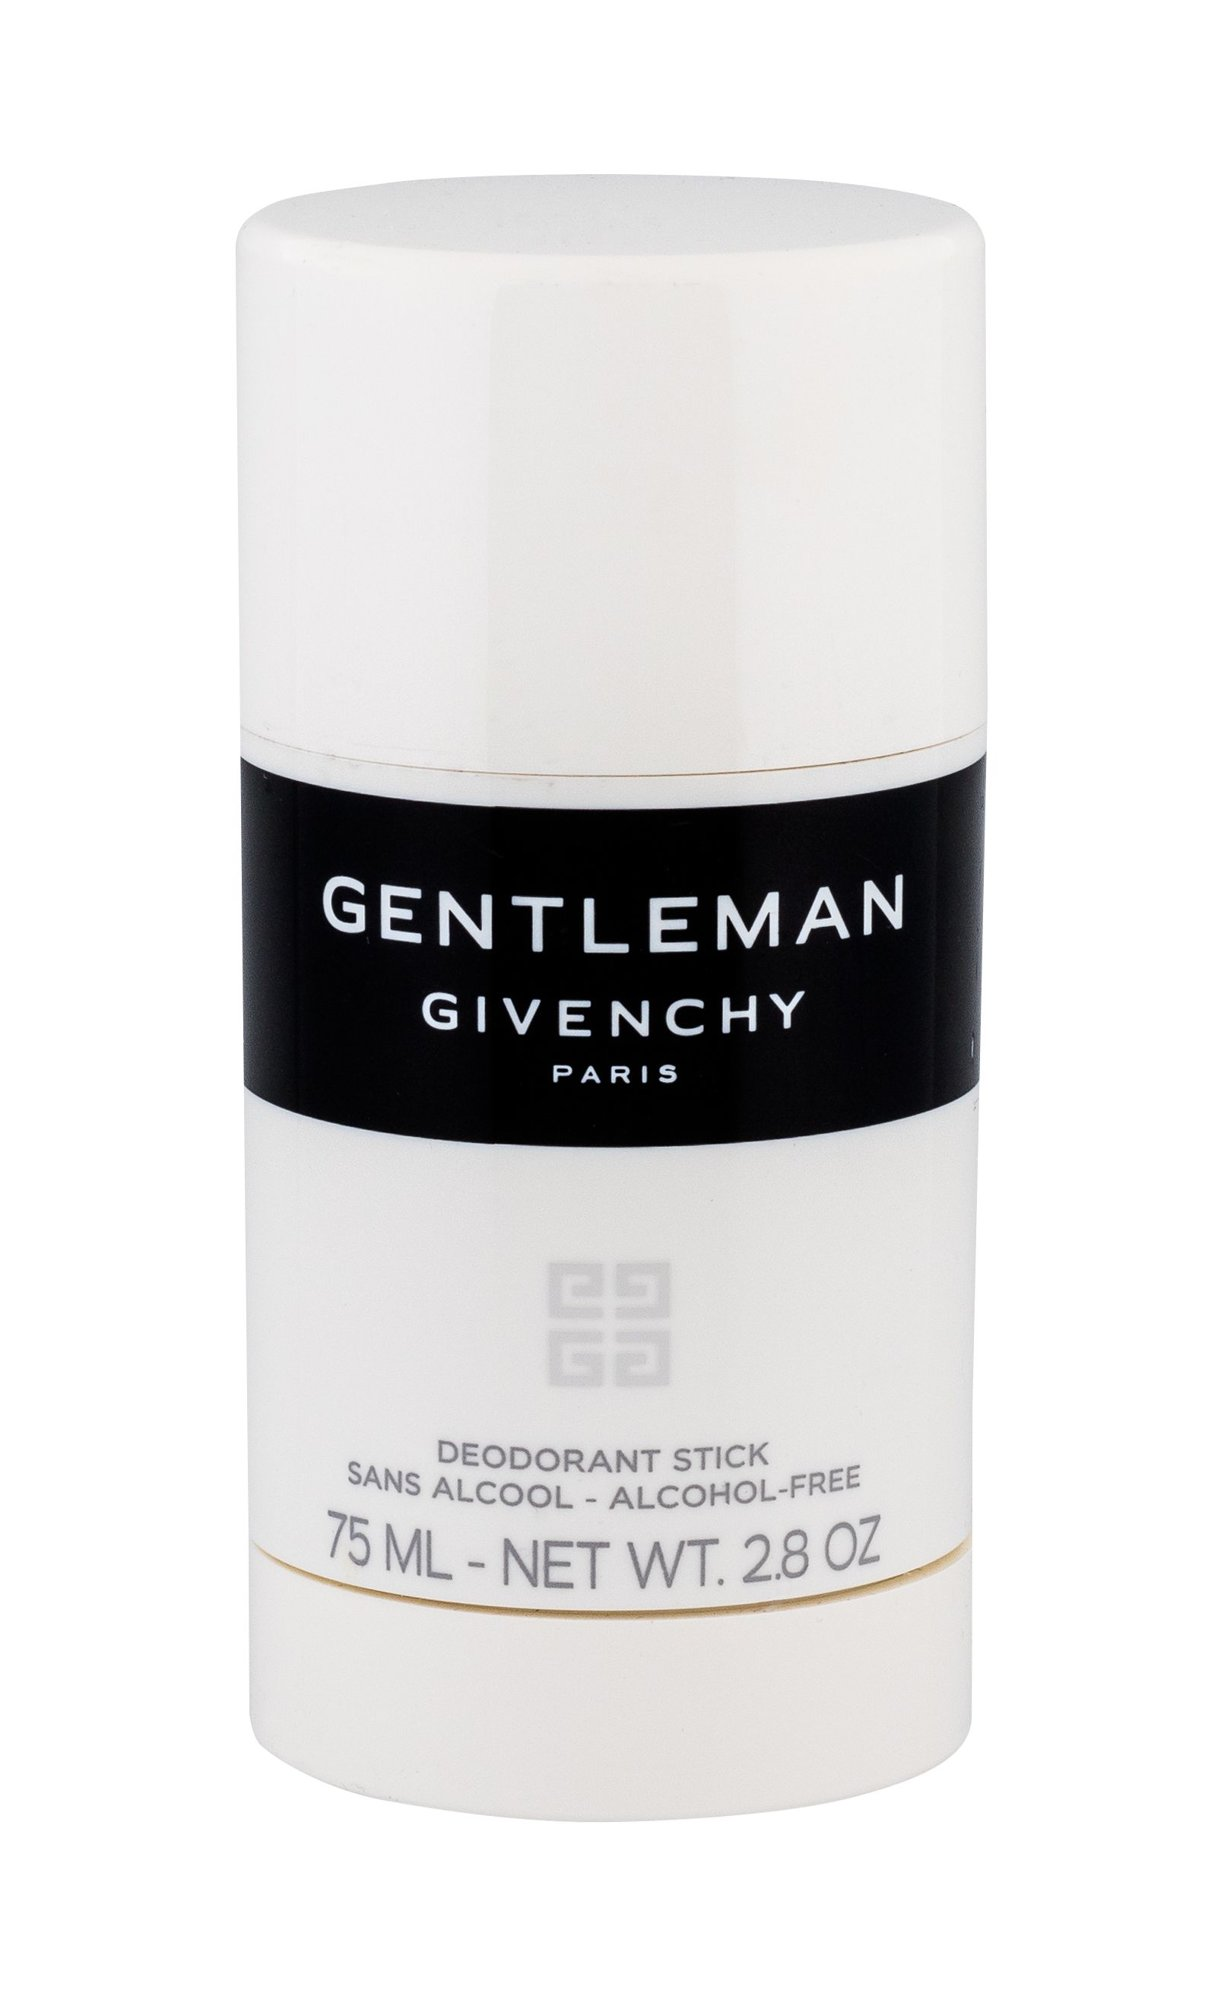 Givenchy Gentleman Deodorant 75ml